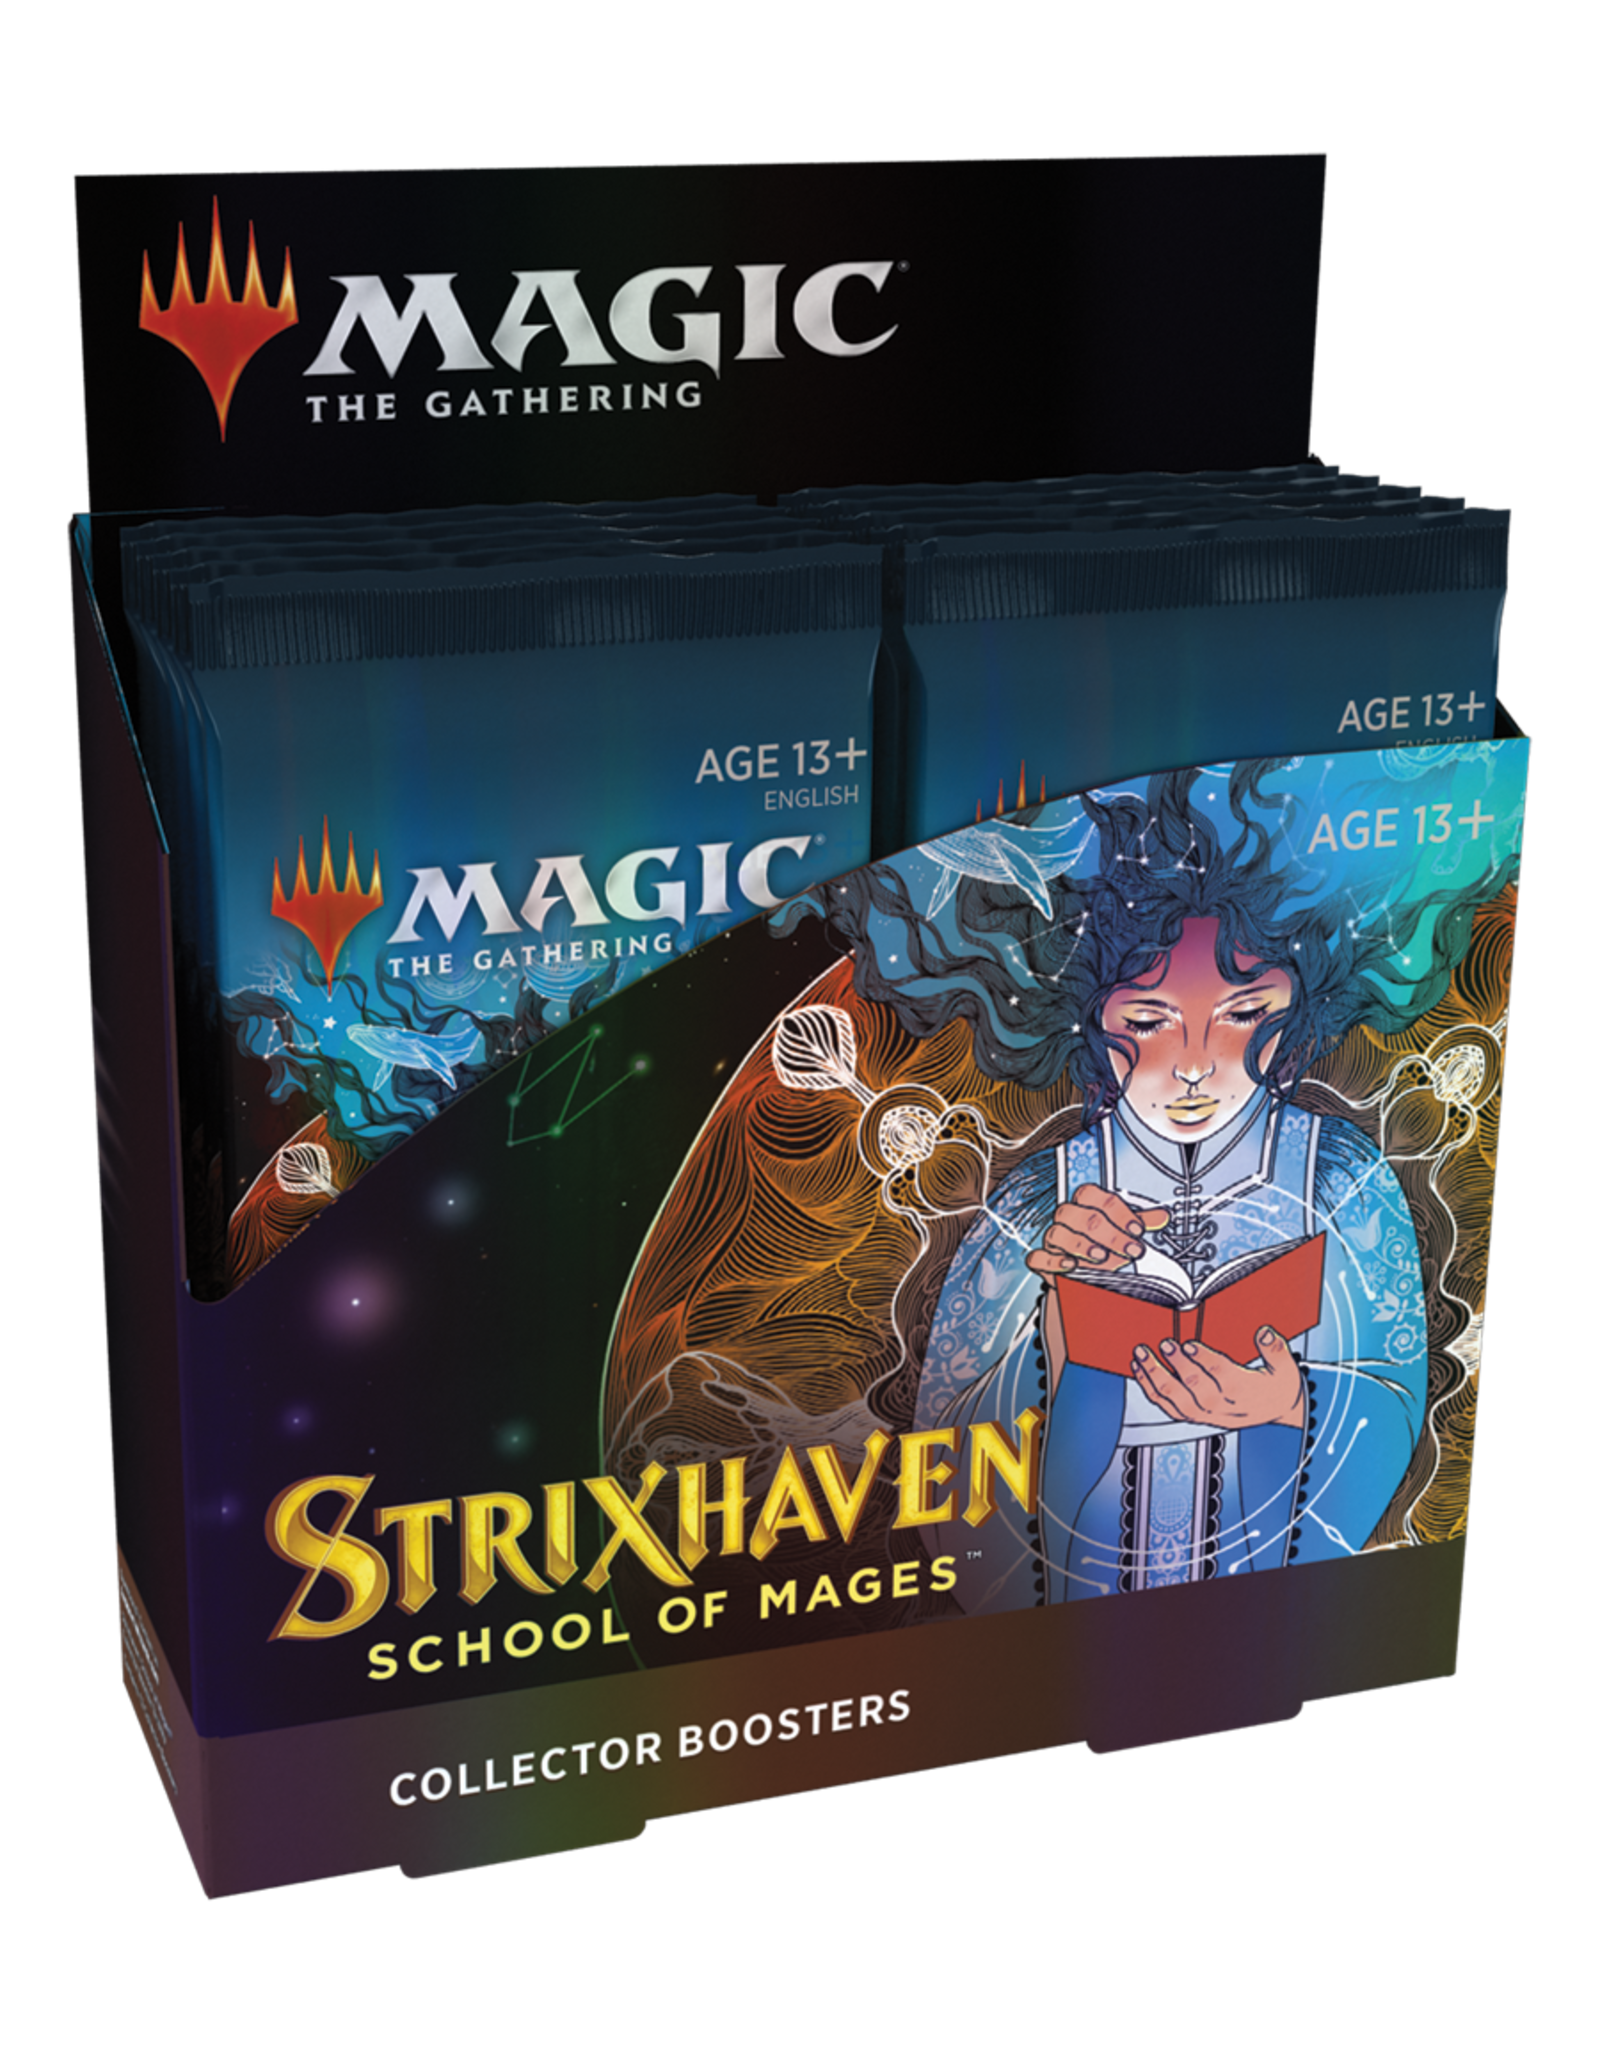 Wizards of the Coast MTG: Strixhaven Collector Booster Box